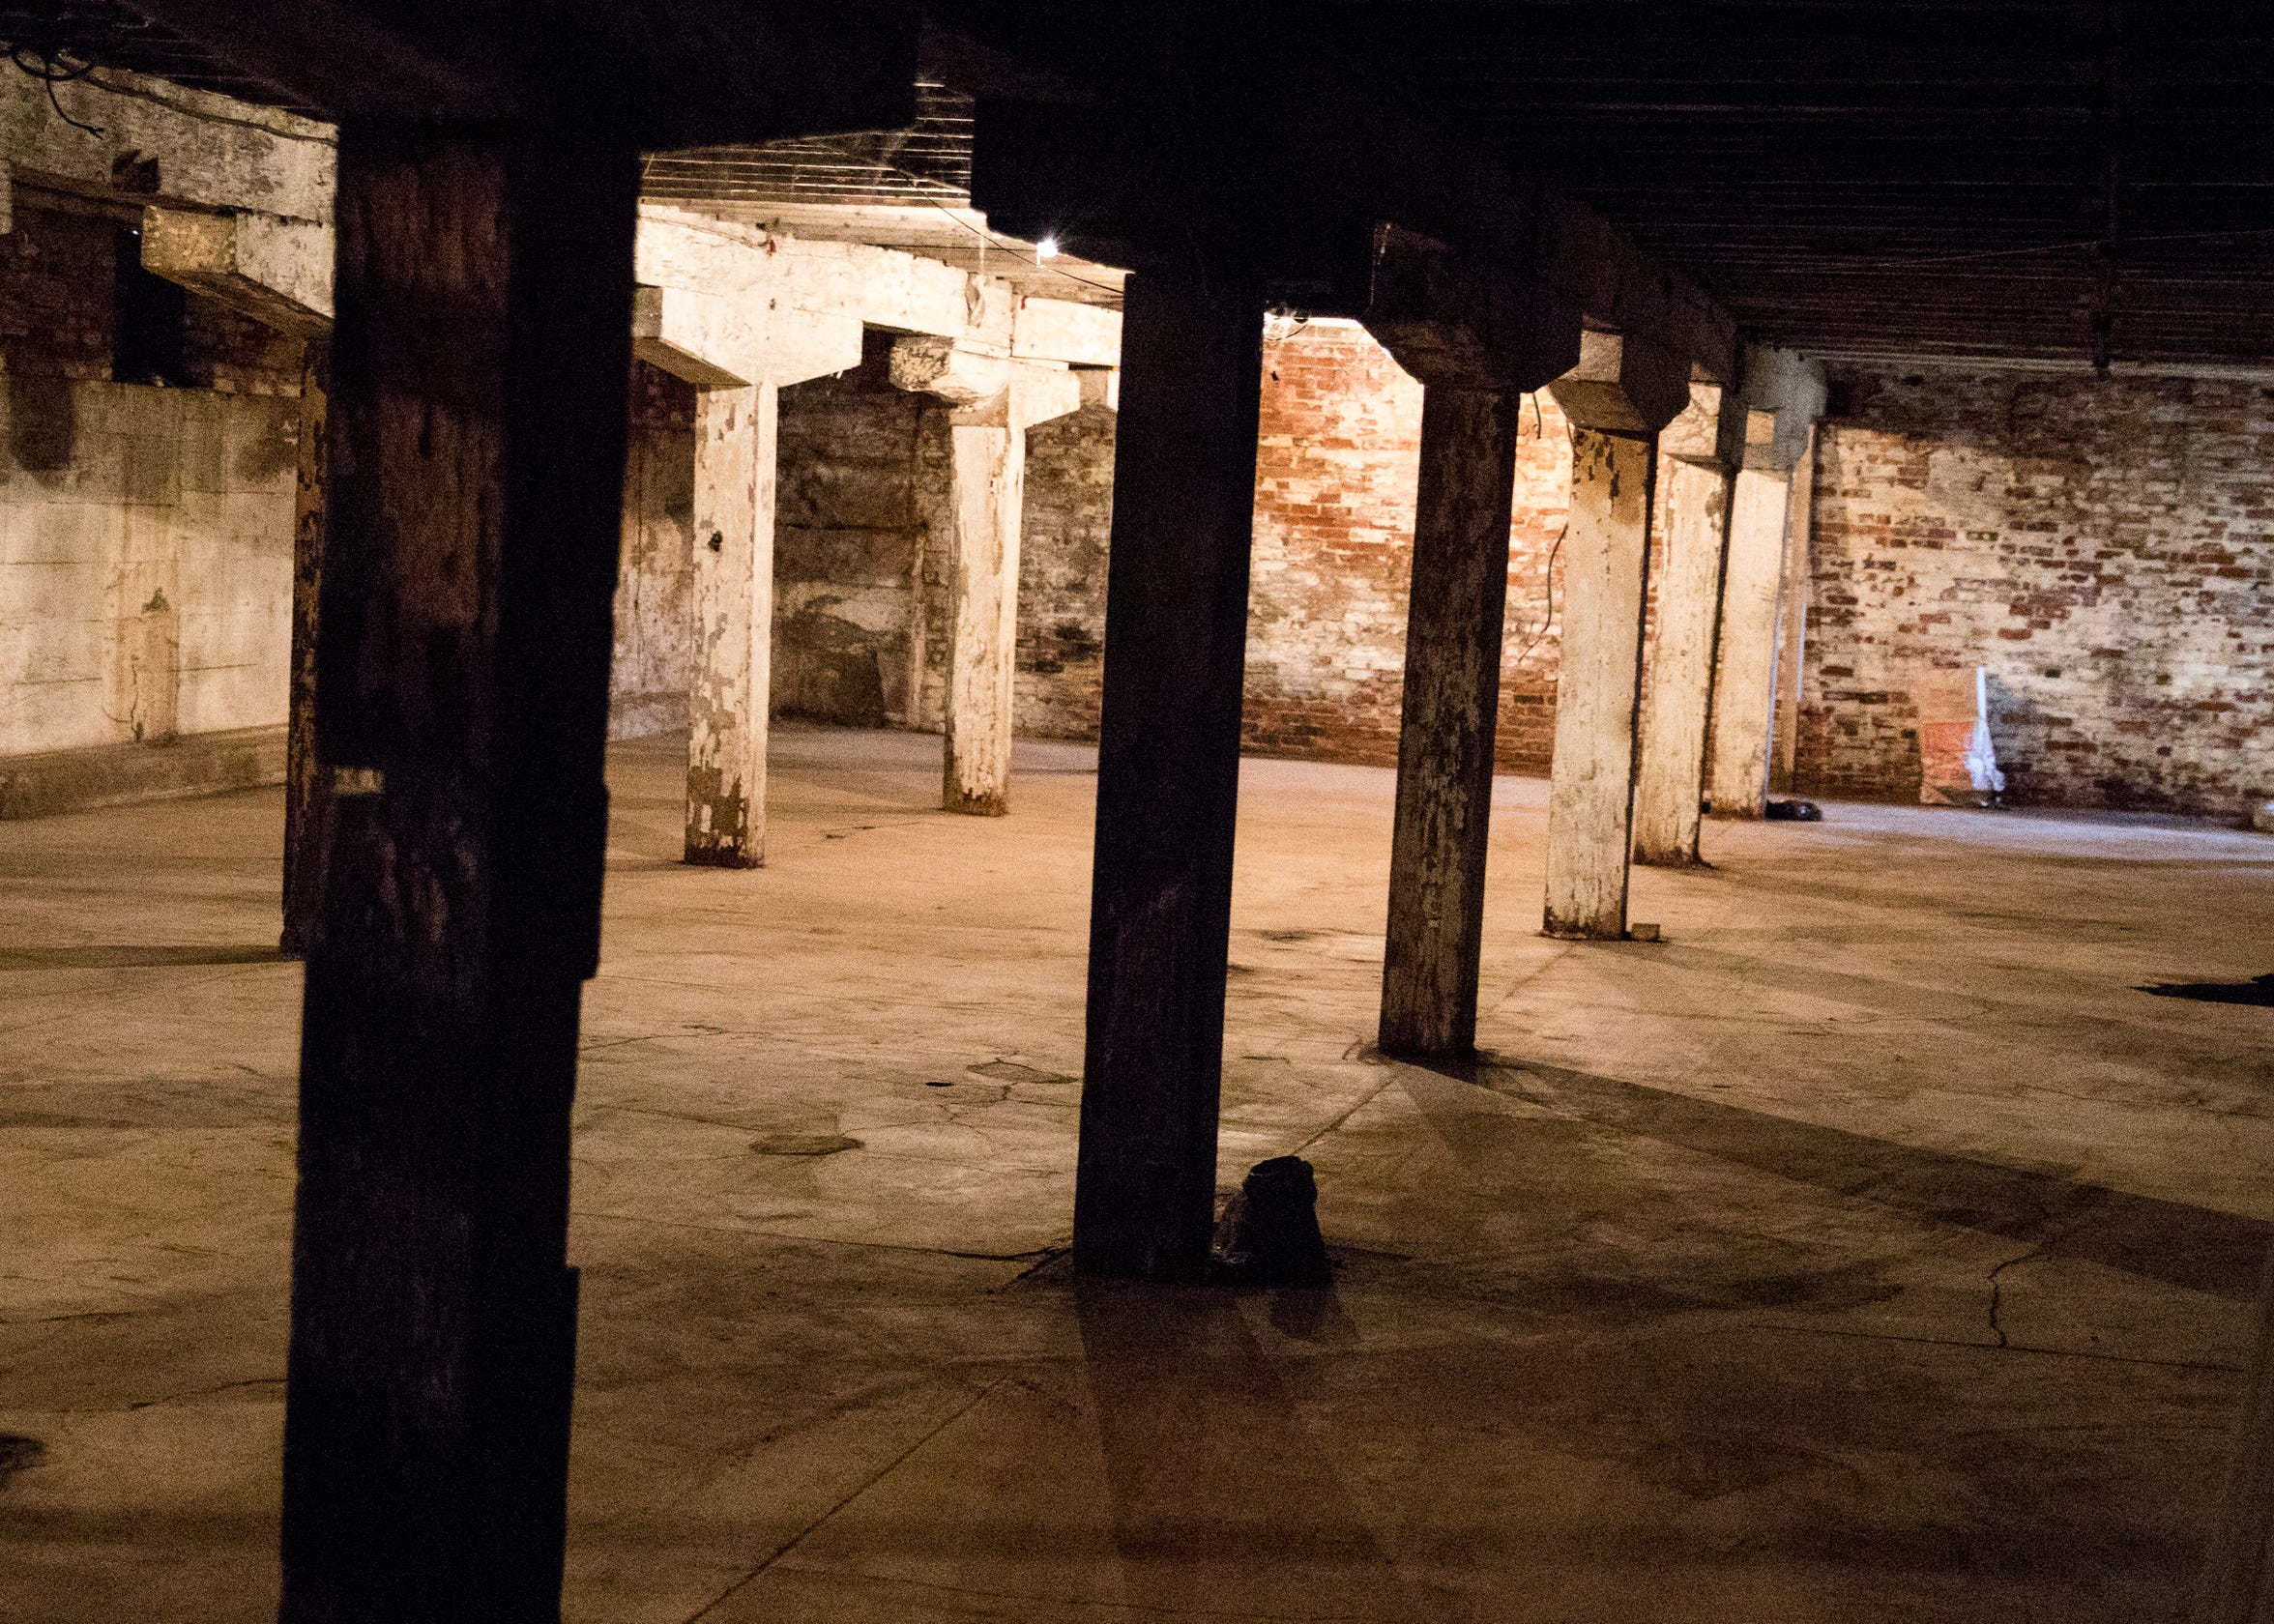 The old canal warehouse supports include several large oak columns, beams, and joists.